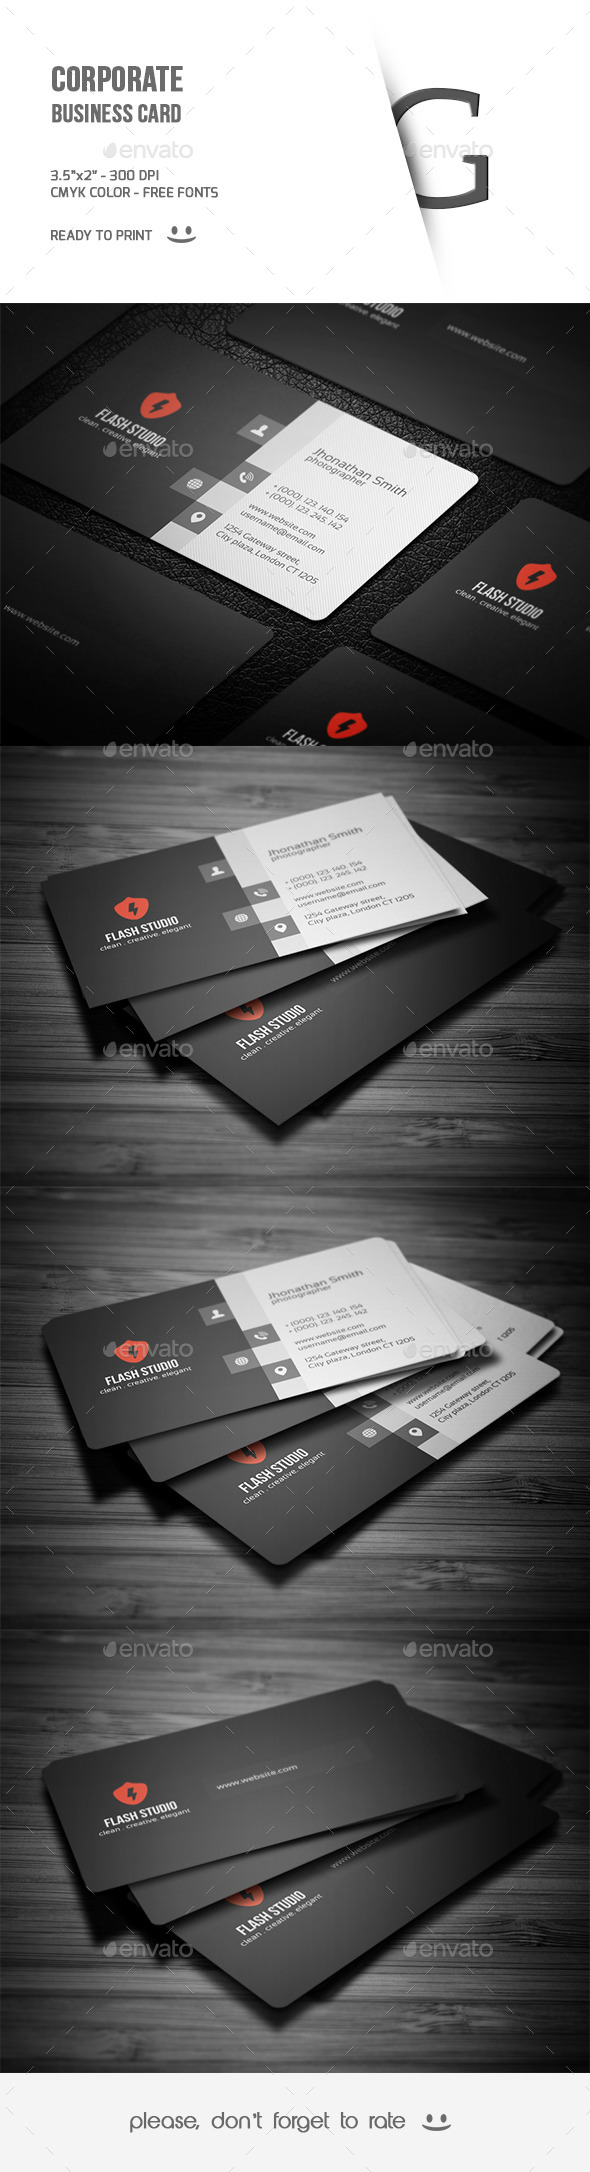 GraphicRiver Corporate Business Card 9725724